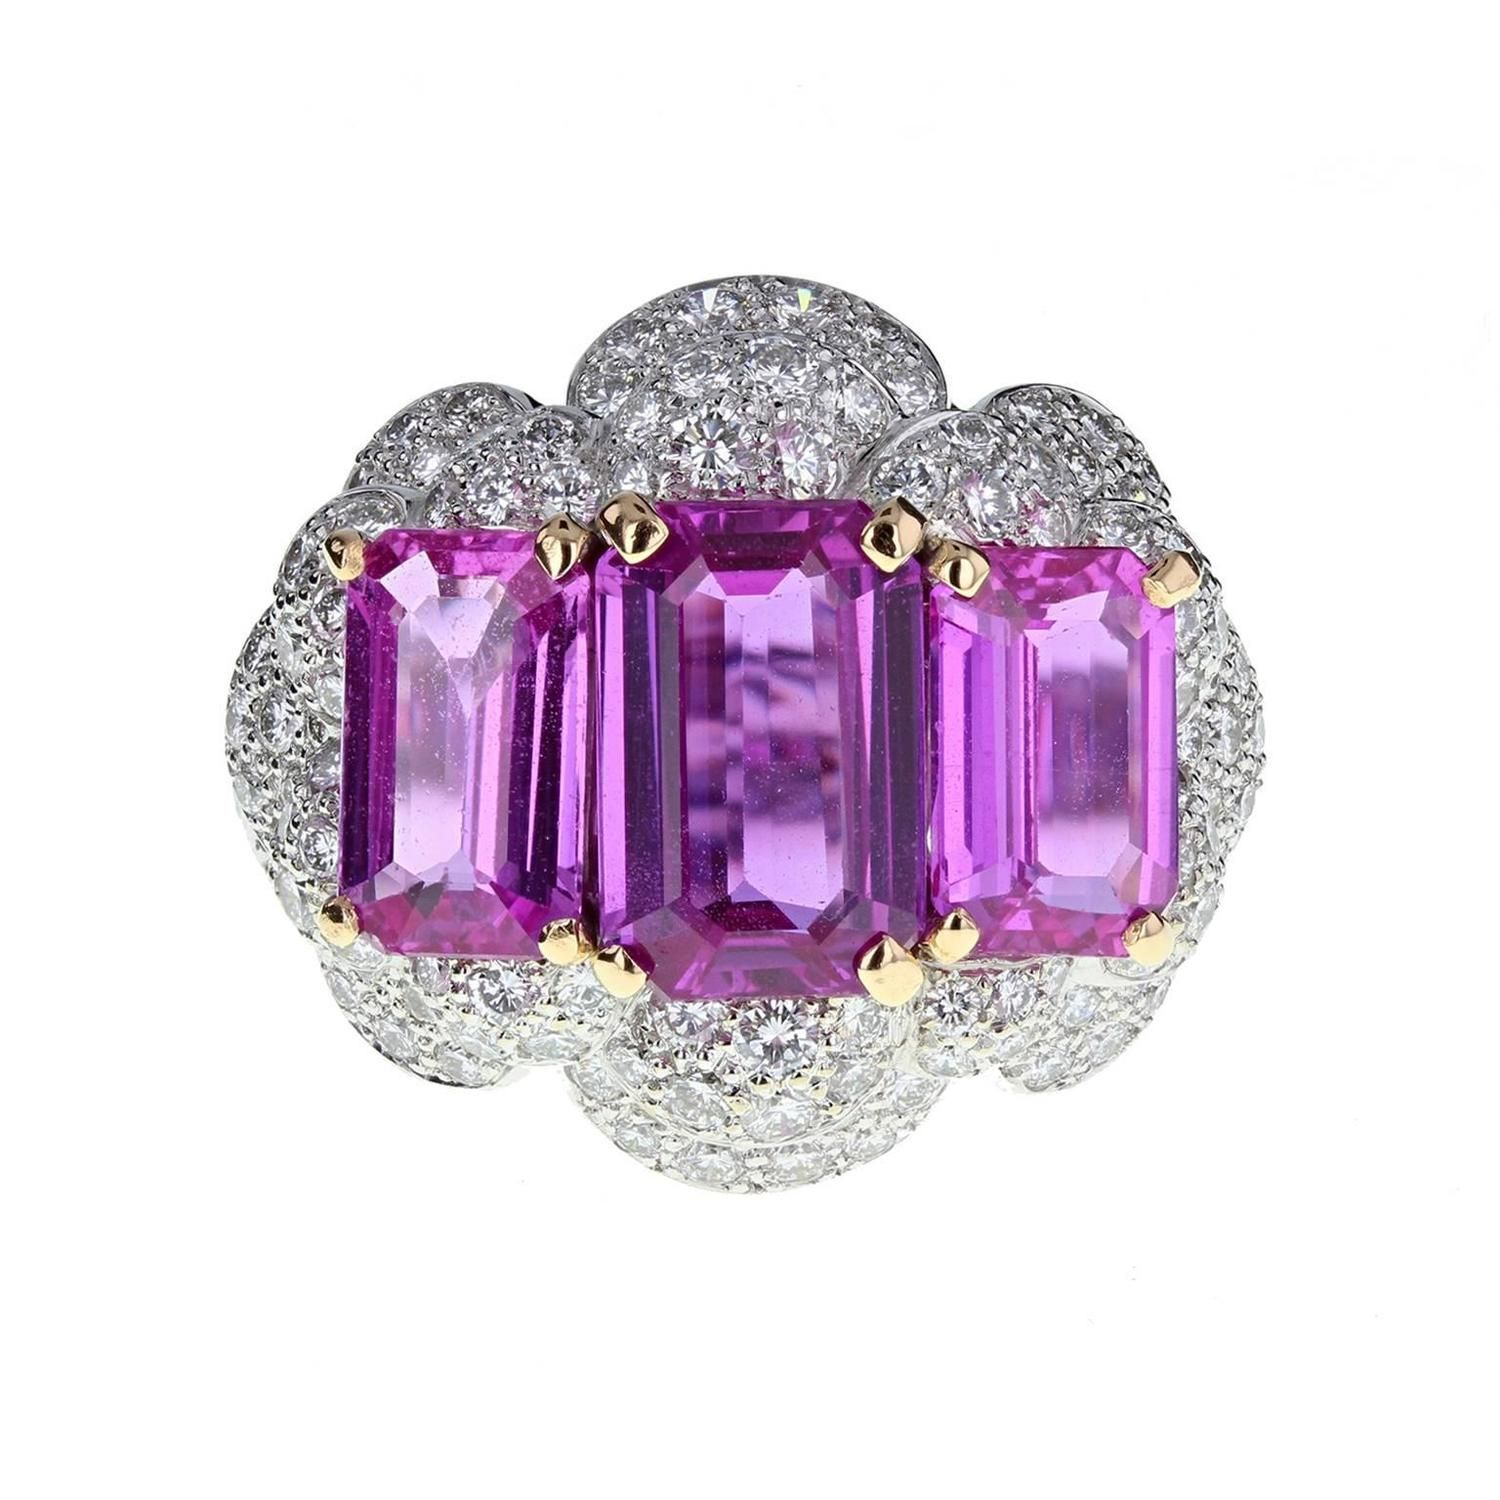 Exceptional Natural Pink Sapphire Diamond Gold Ring 1